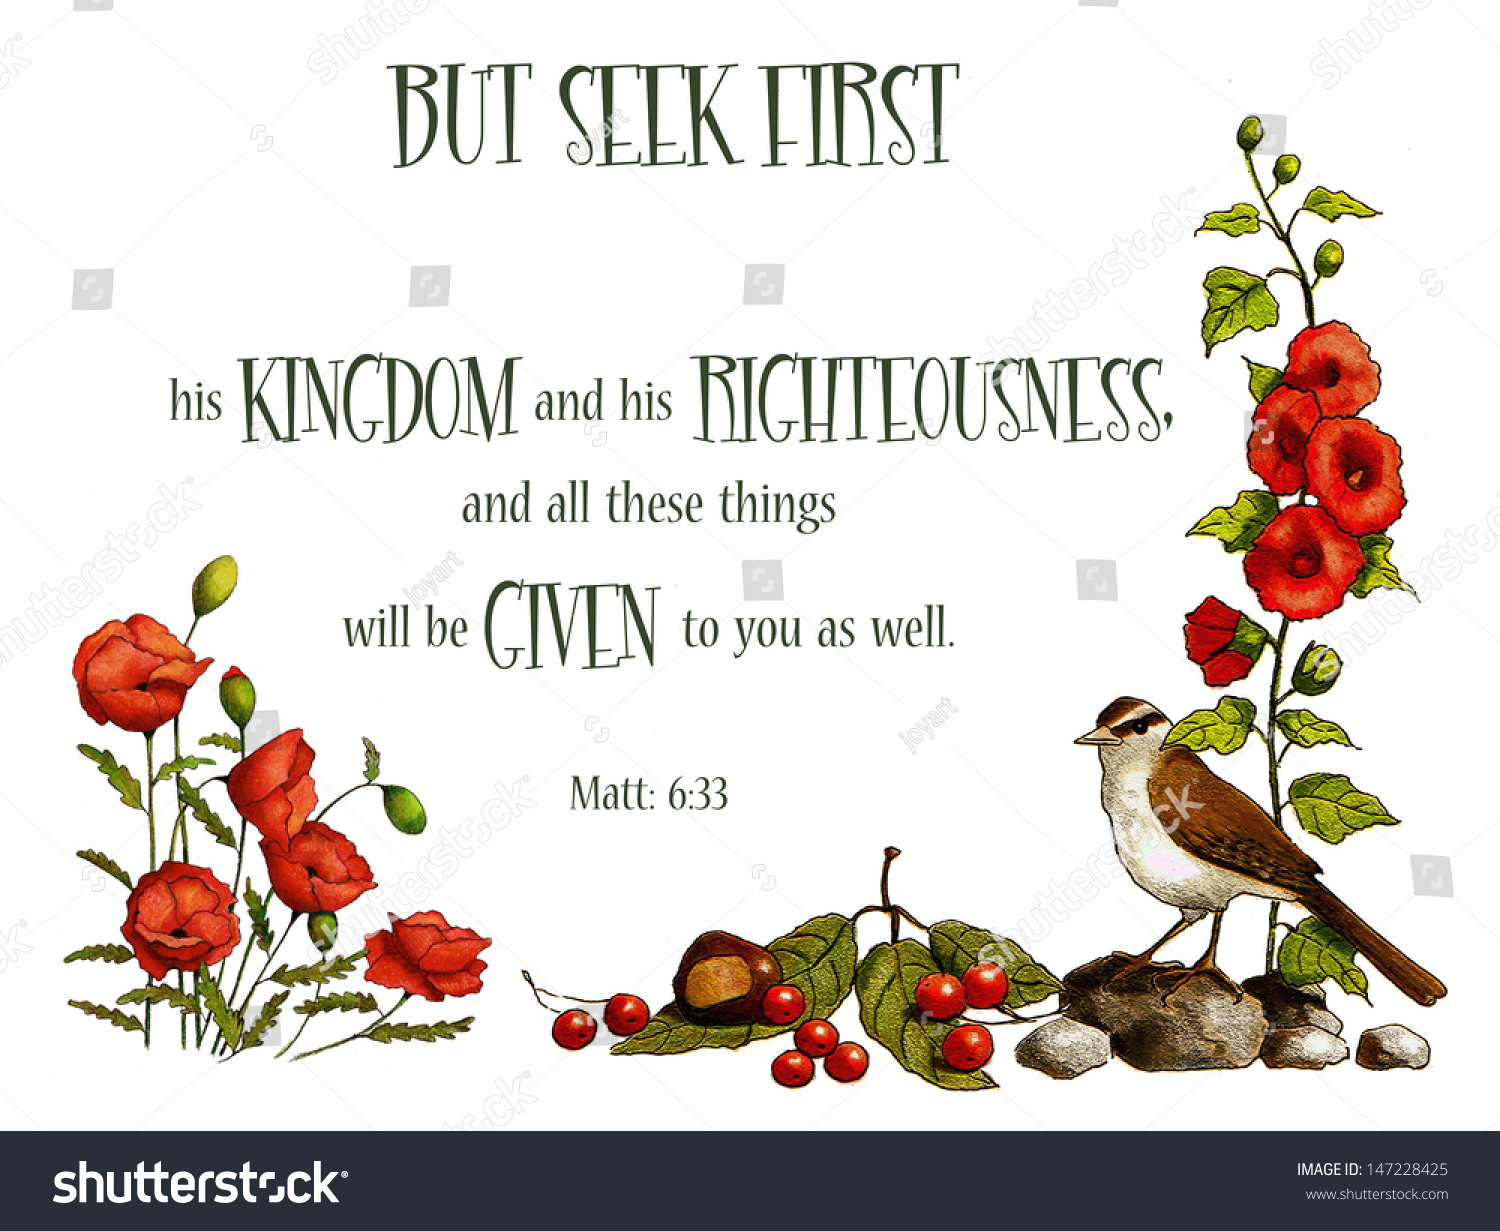 a research on the kingdom of god in the scriptures of the bible Bible study courses  romans 14:17 for the kingdom of god is not meat and drink   many of the mysteries that were hidden in the scriptures,.